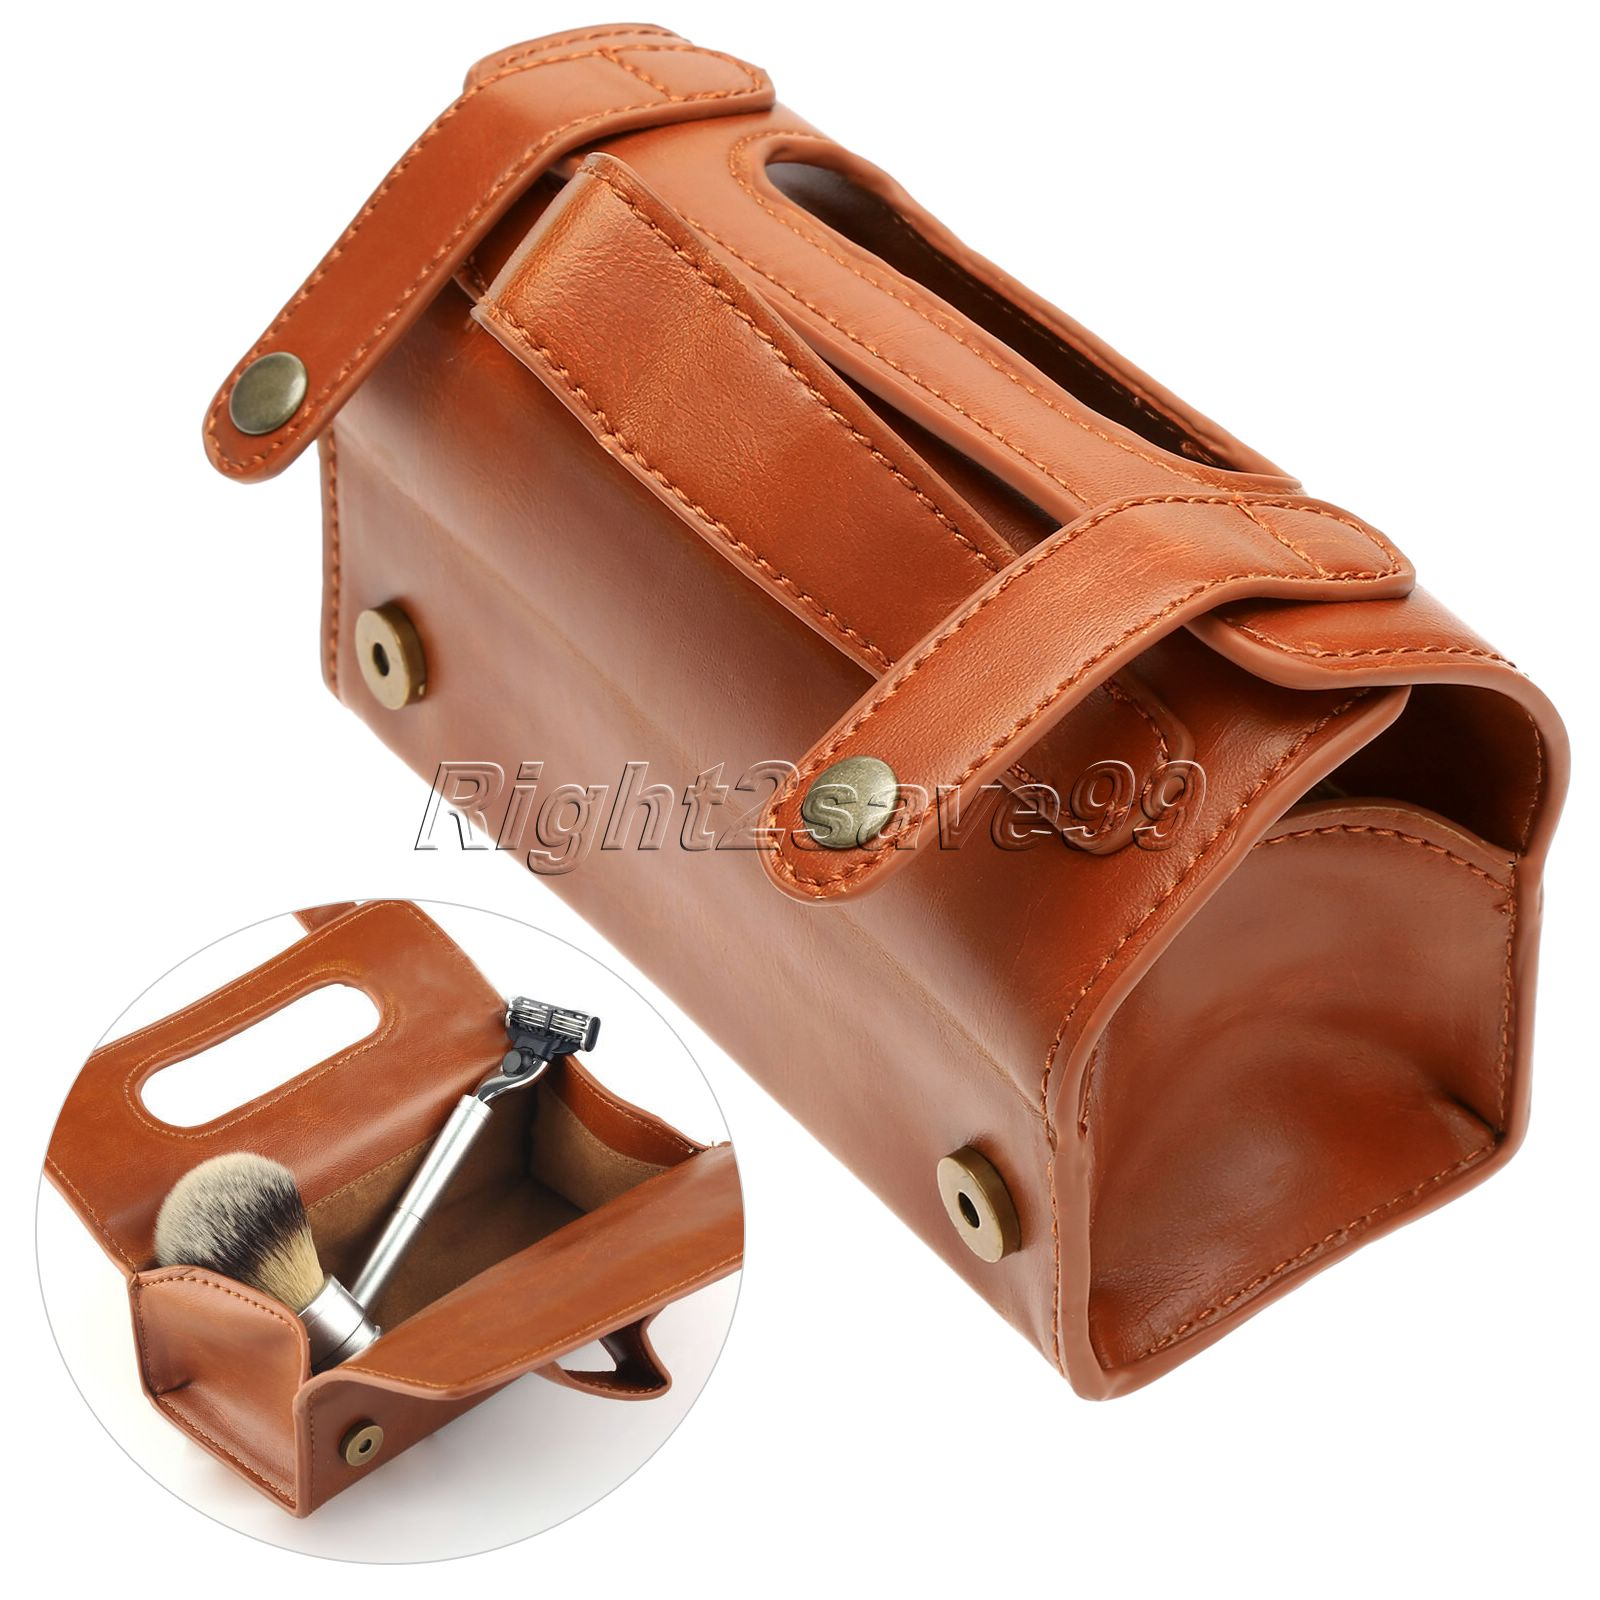 Men PU Leather Travel Toiletry Bag Shaving Wash Case Organizer Bag Dark Brown For Protect Shaver Shaving Gift Container